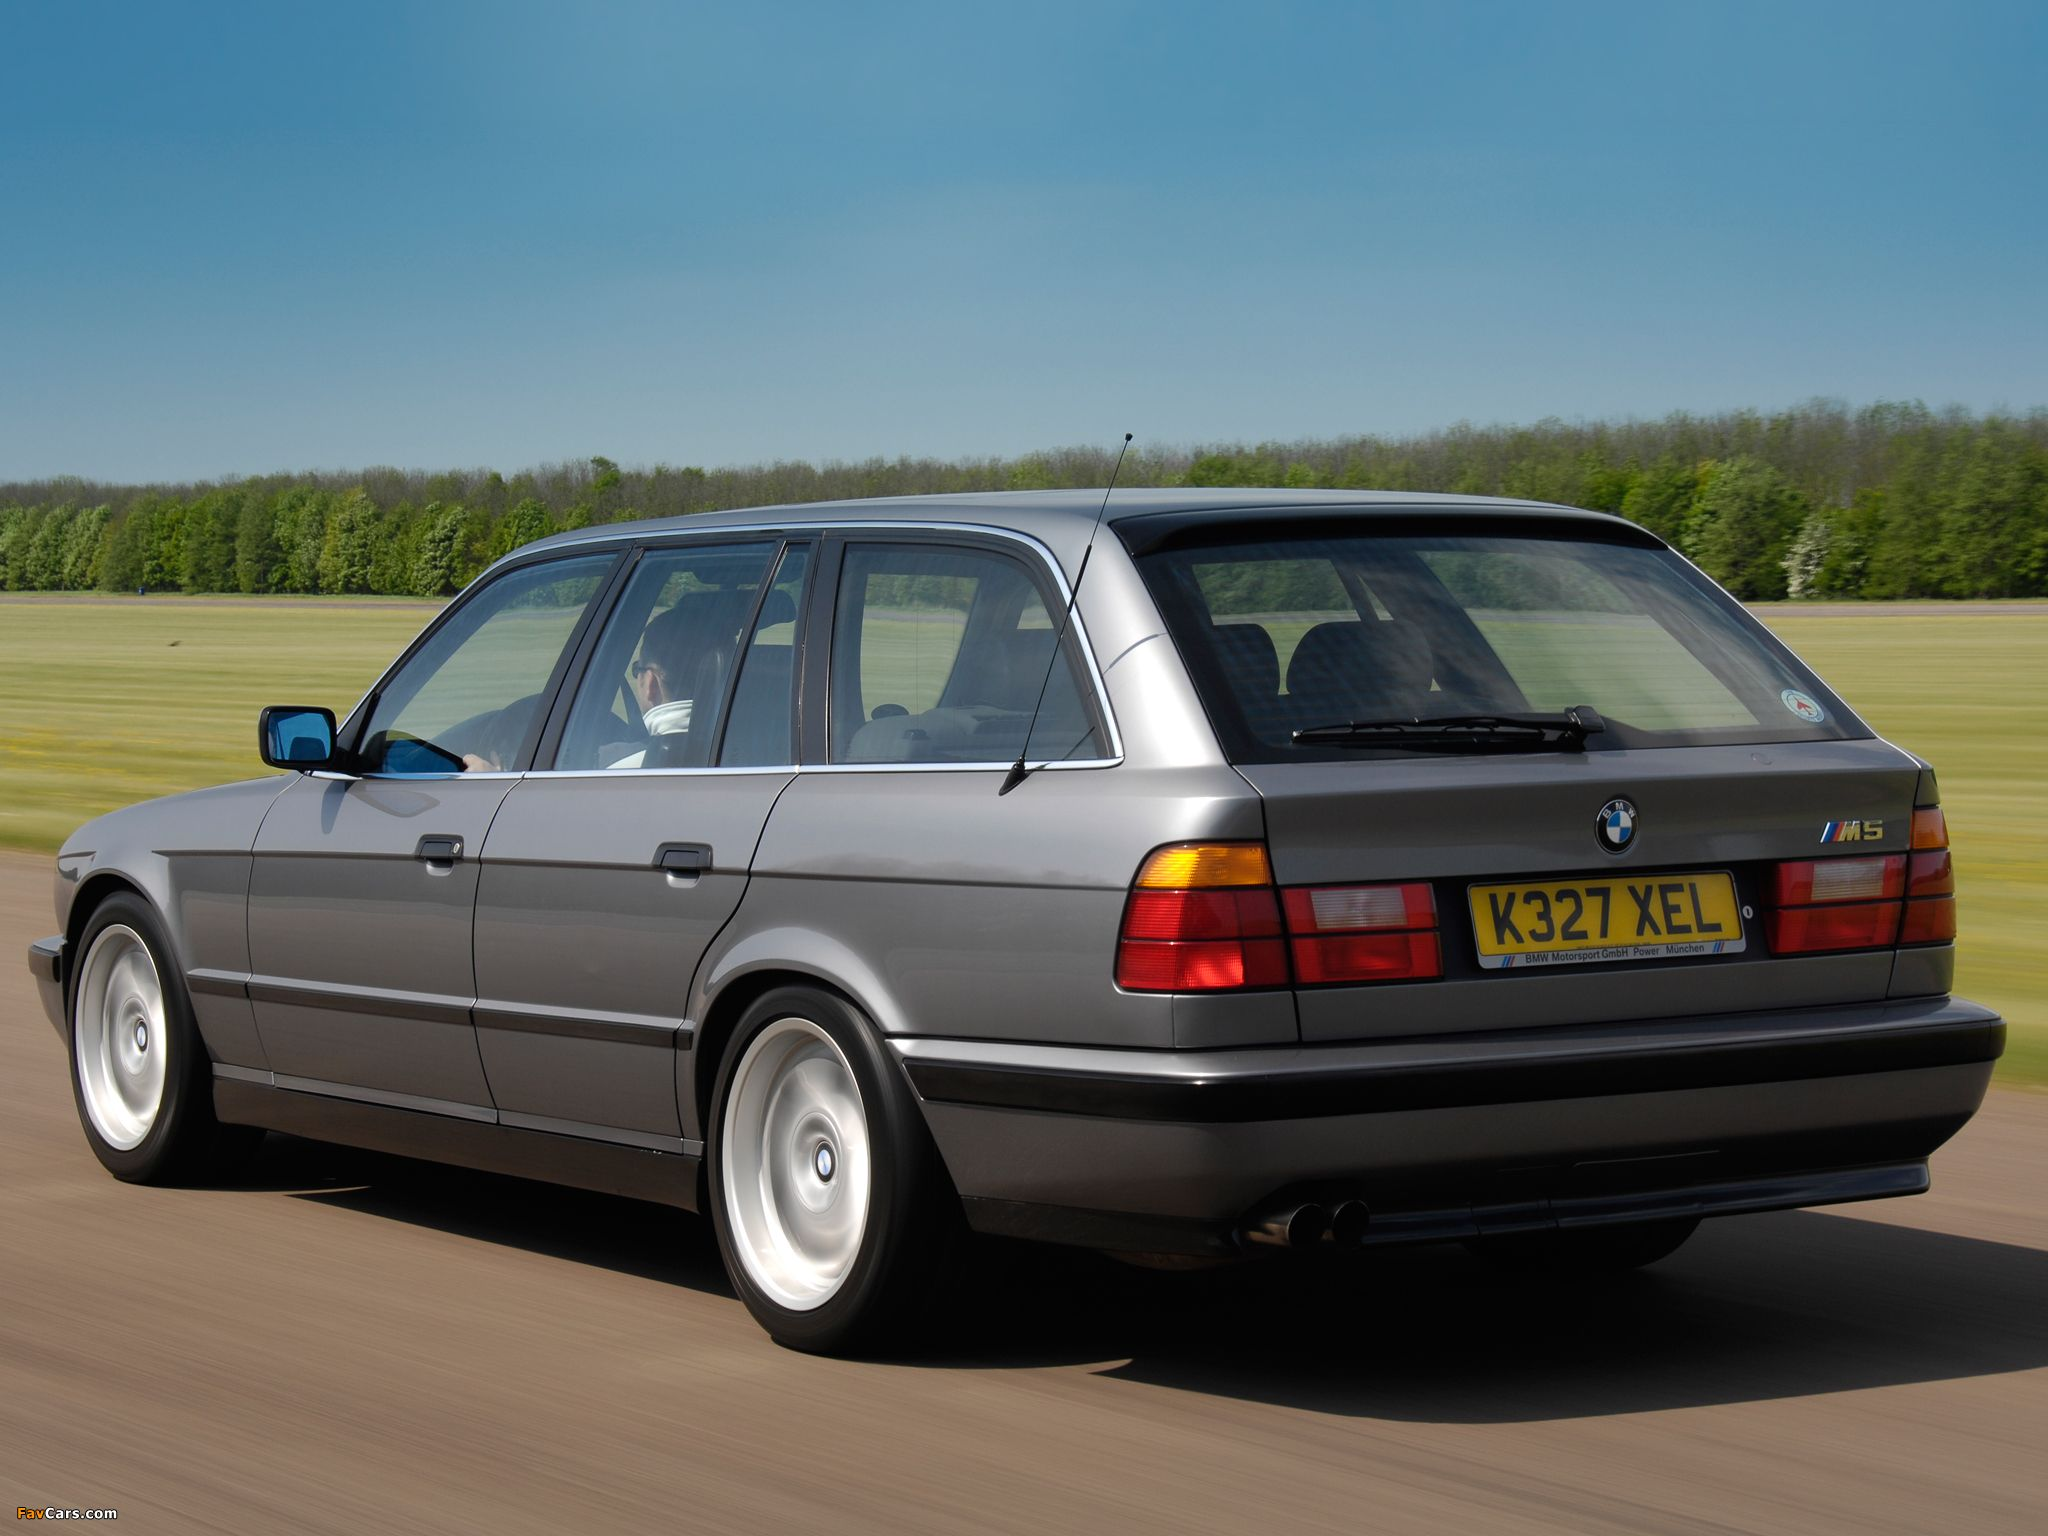 Bmw E34 Wallpapers Top Free Bmw E34 Backgrounds Wallpaperaccess